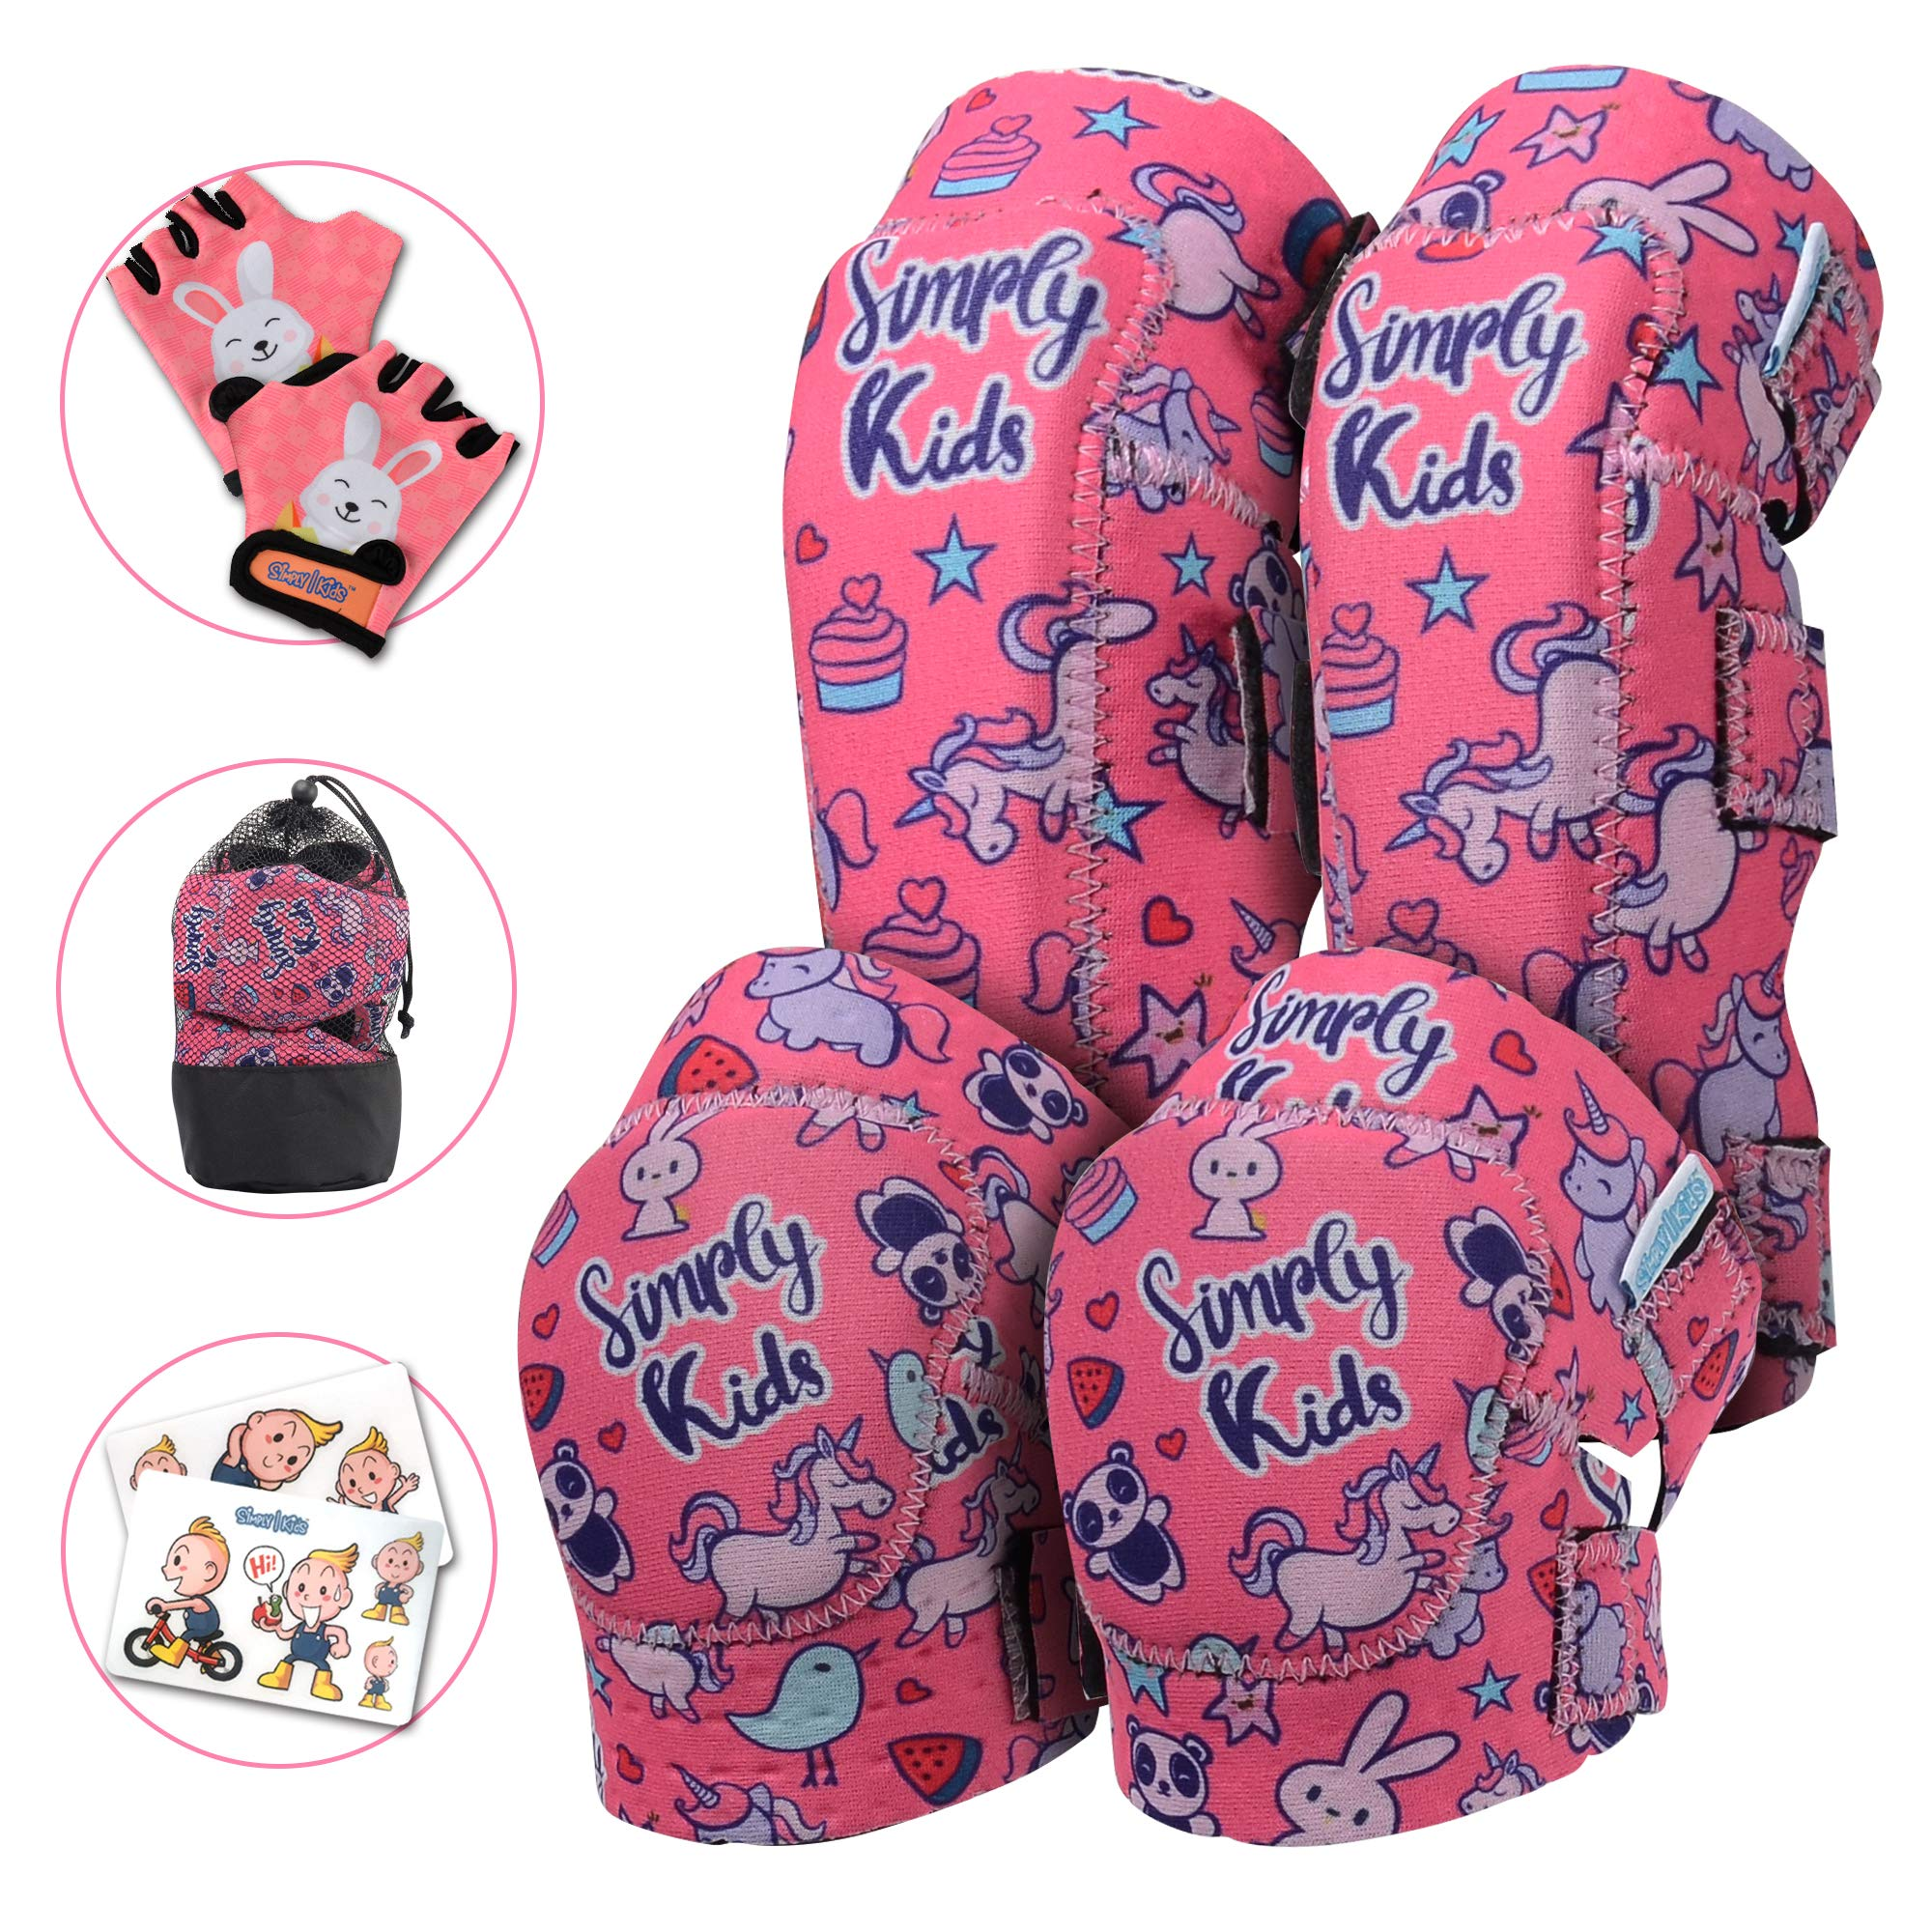 Elbow and Knee Pads for Kids with Bike Gloves | Kids Protective Gear Set | Kids Knee and Elbow Pads | Kids Knee Pads | Roller-Skating, Skateboard, Bike for Children Boys Girls (Unicorn, Medium 4-8) by Simply Kids